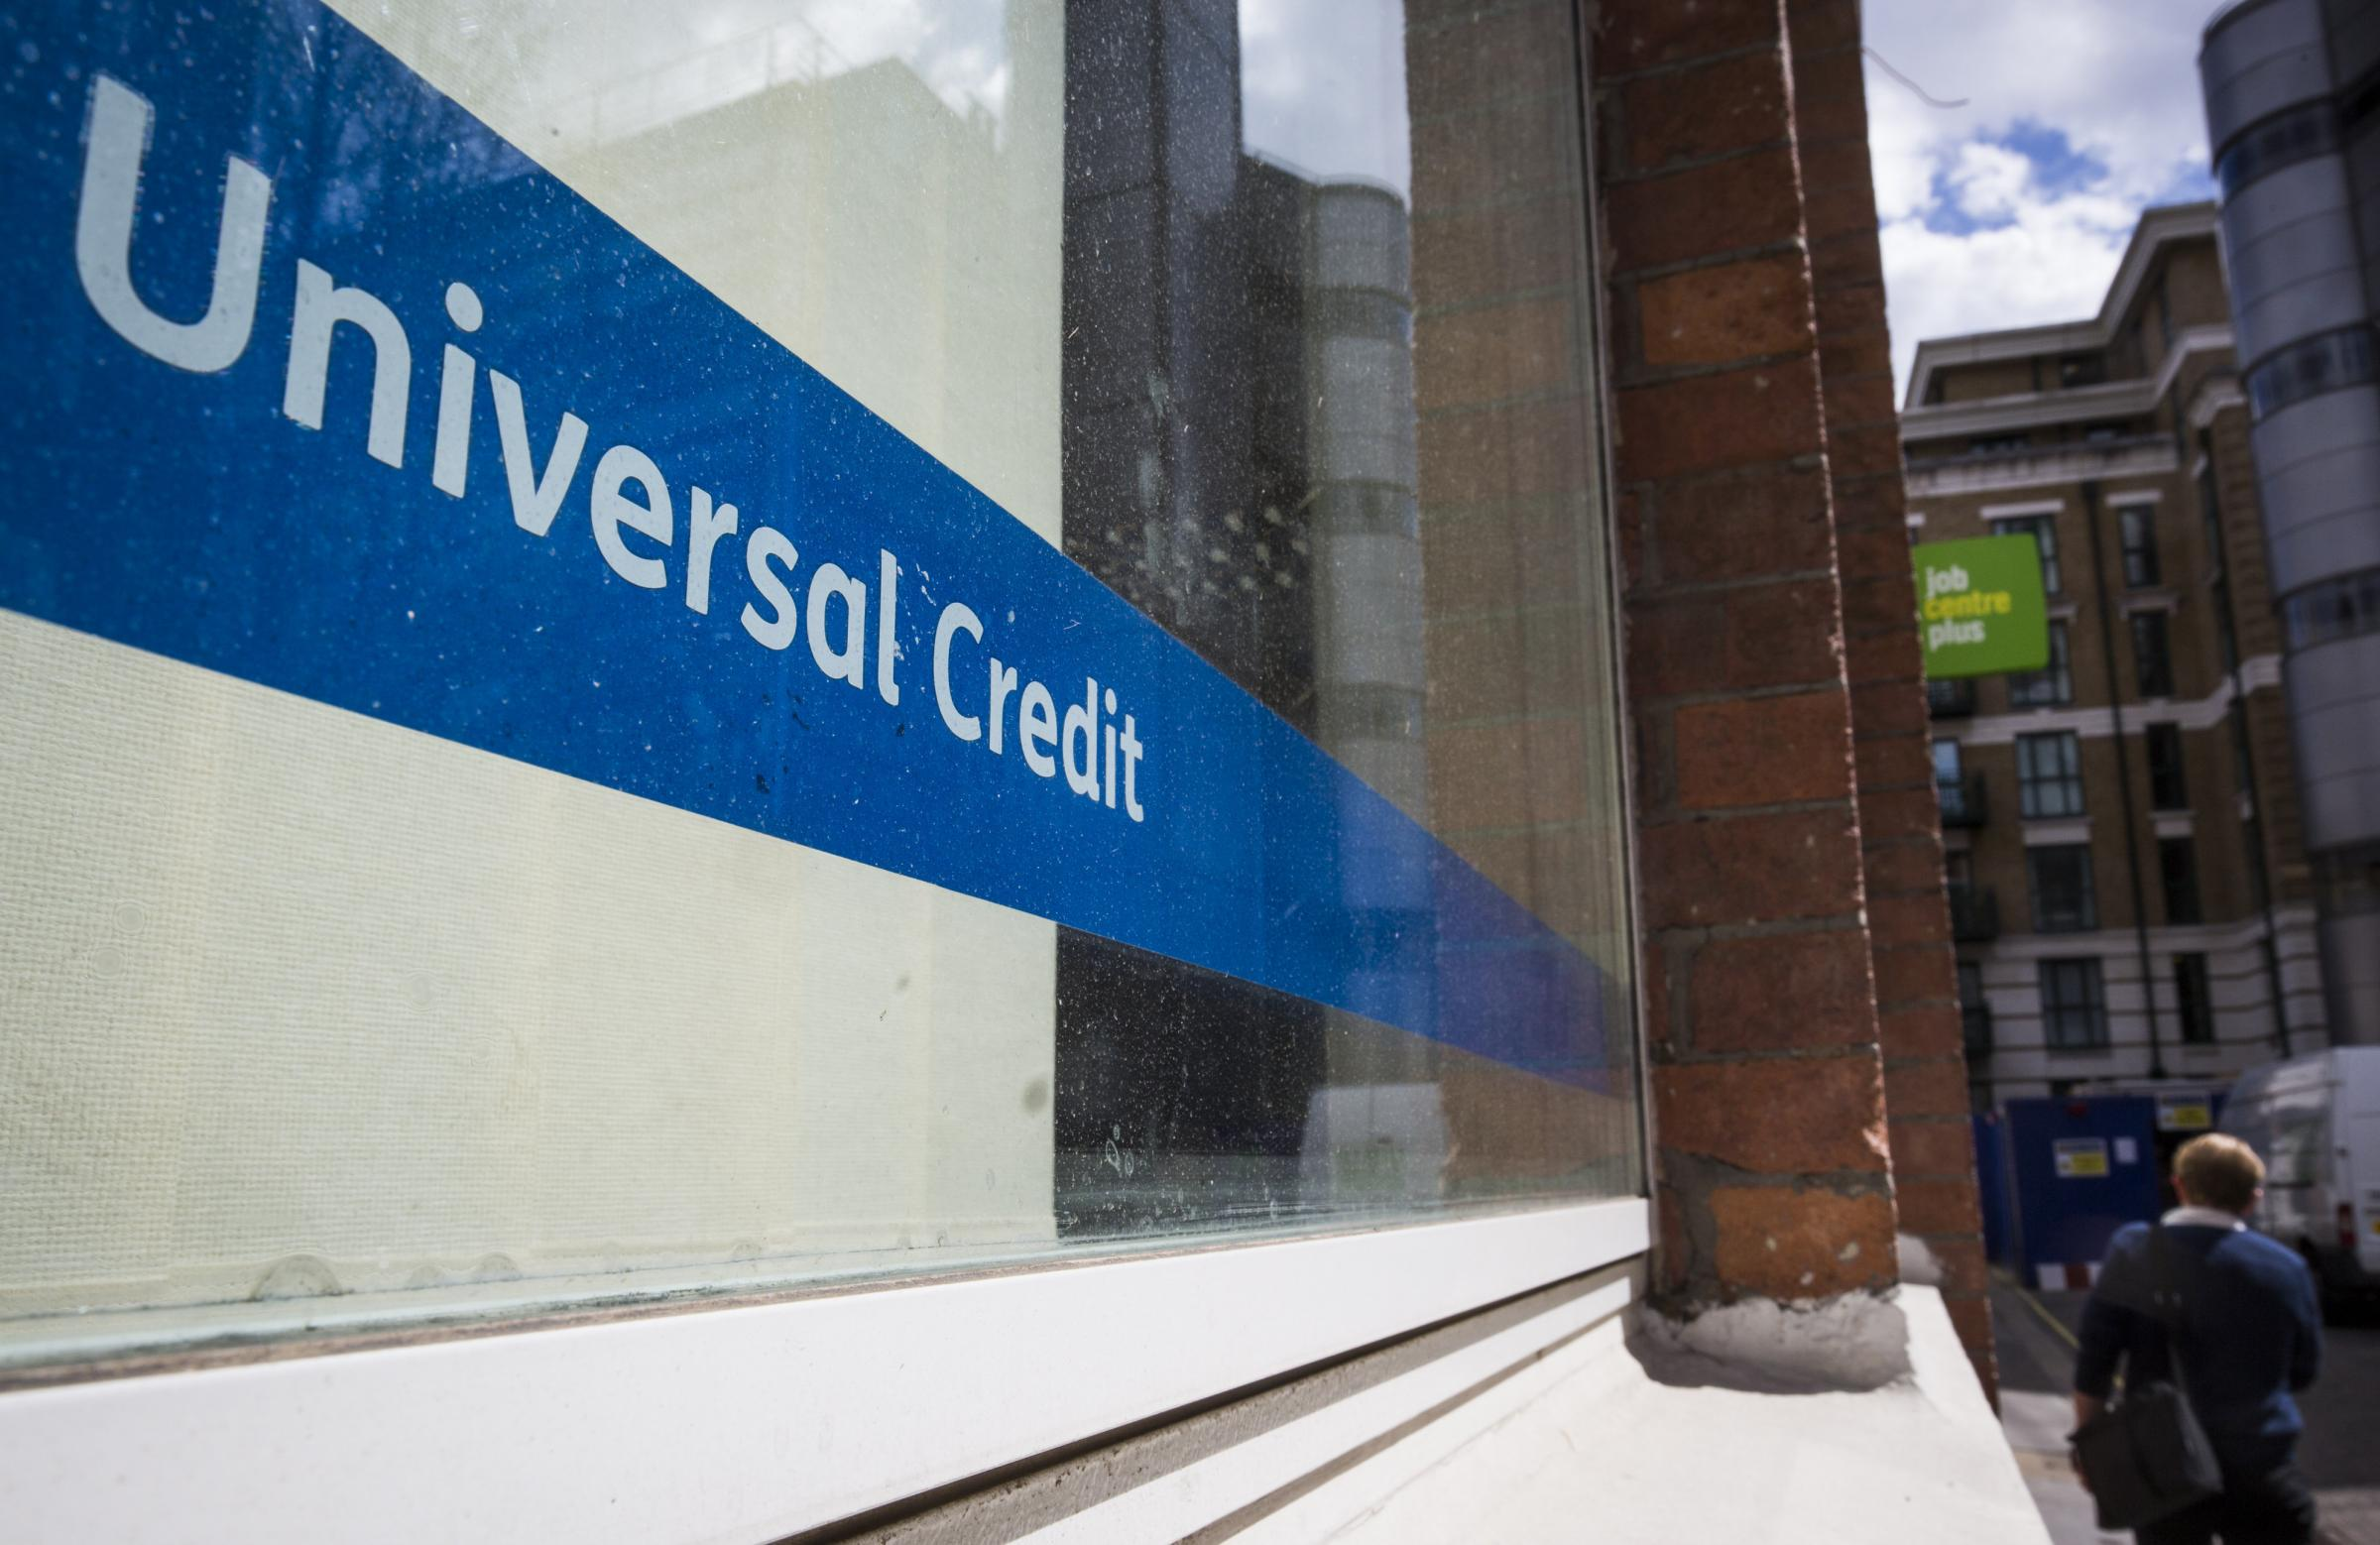 Universal Credit claimants have faced six-week payment delays